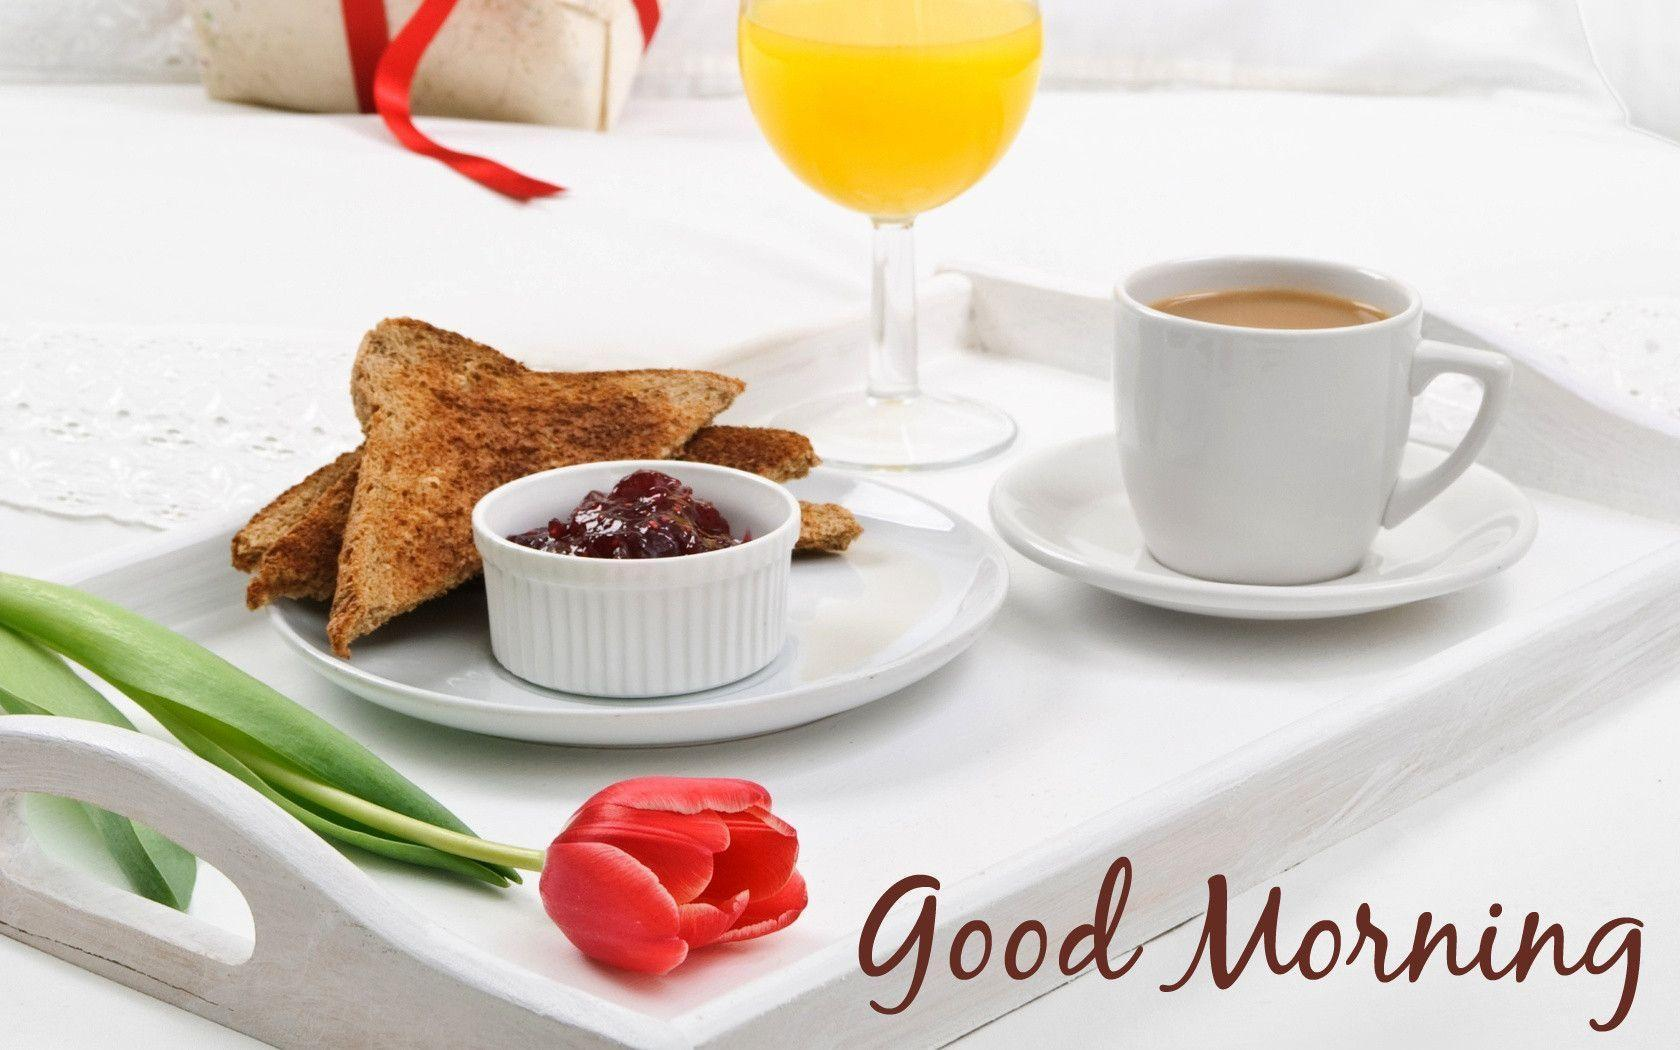 Wallpaper download good morning - Download Php Img Http Www